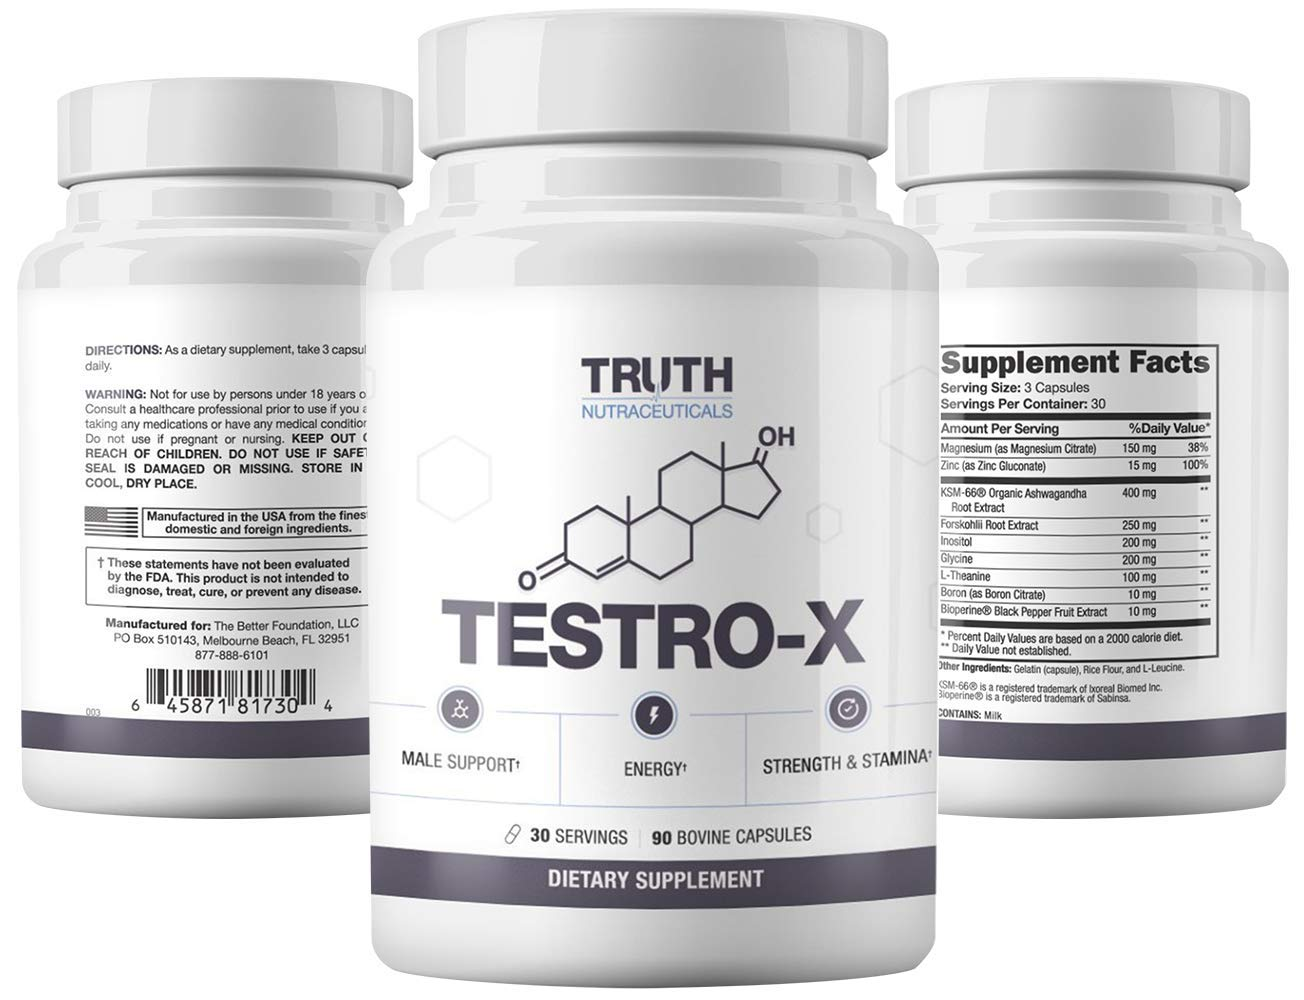 Truth Nutra - Testro-X - 30 Day Supply - All Natural Testosterone Booster - 100% Natural Formula - Promote Proper Hormonal Function - Support Healthy Testosterone Production